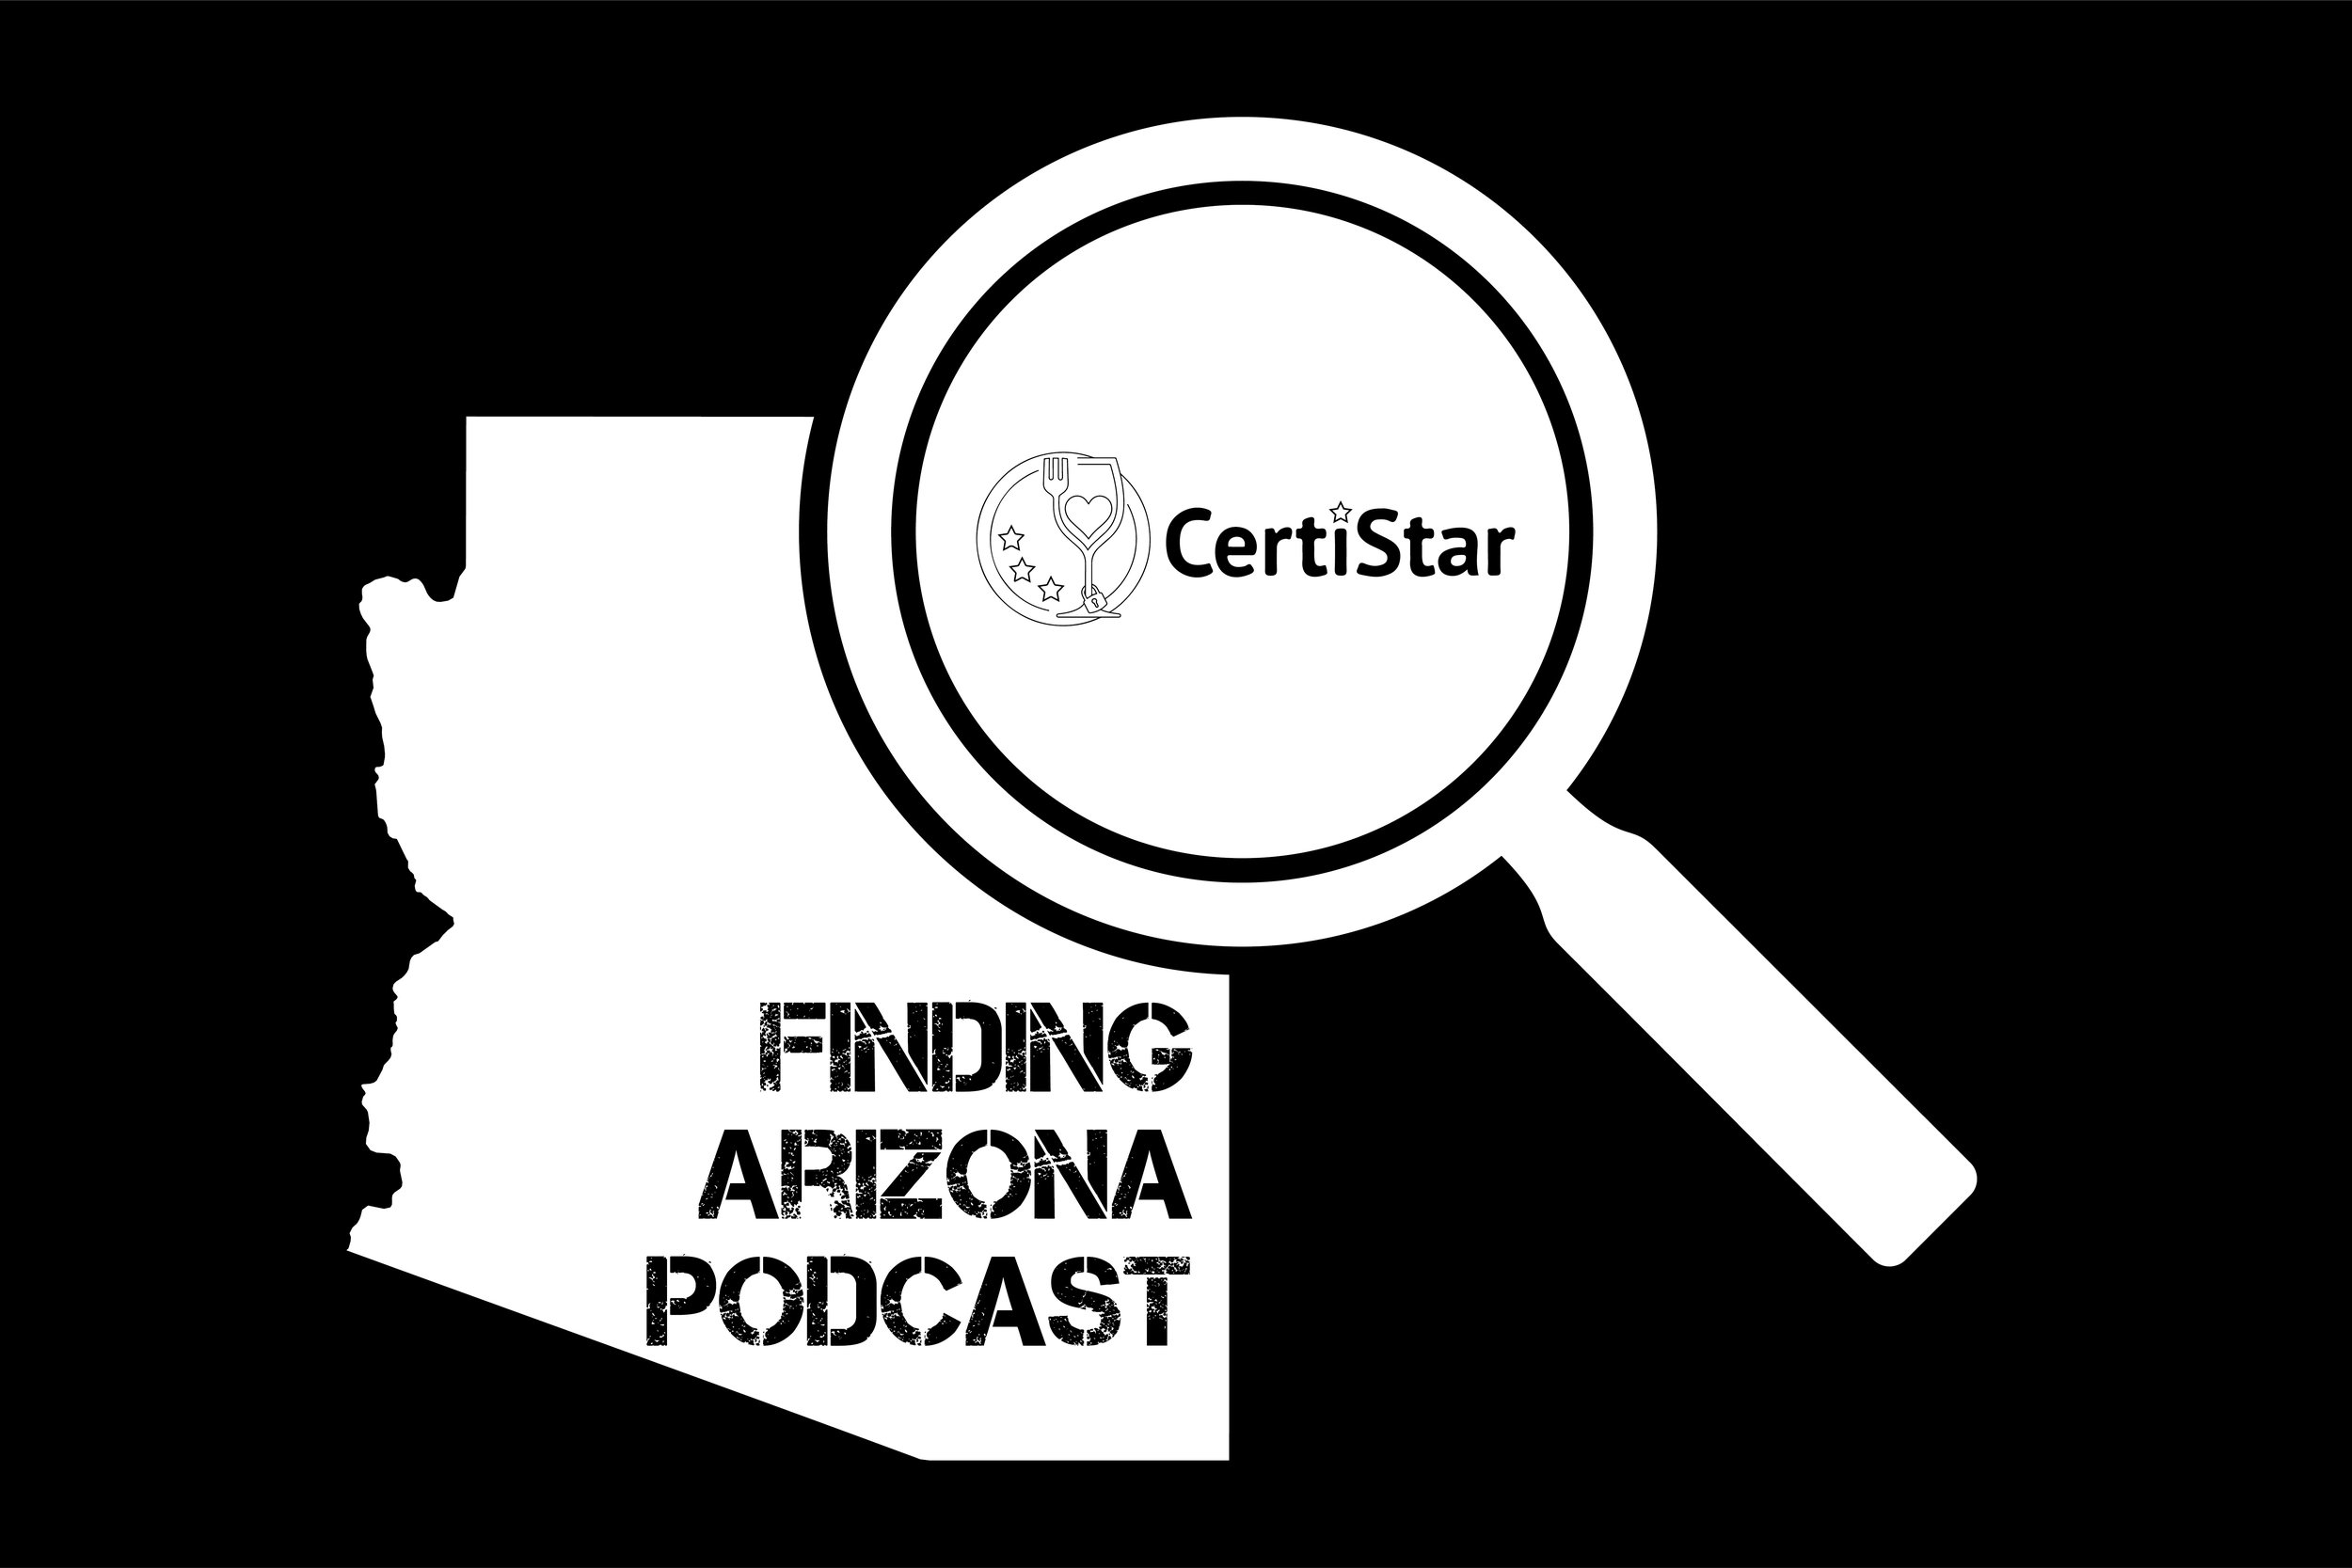 PodCastLogo-CertiStar-large.jpg